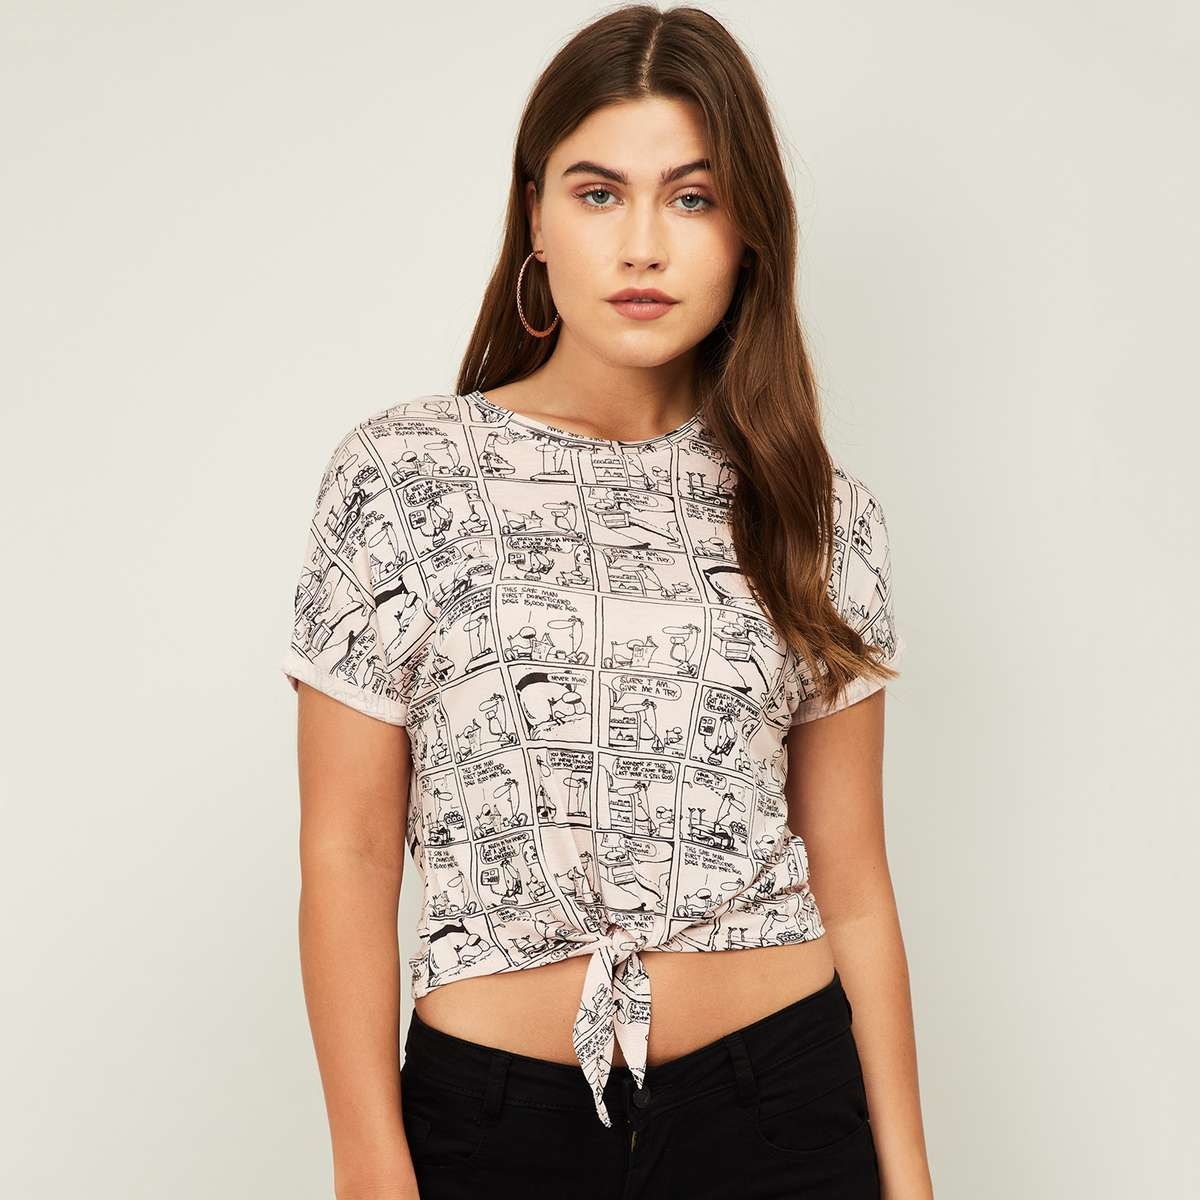 2-GINGER Women Printed Short Sleeves Tie-Up Crop Top